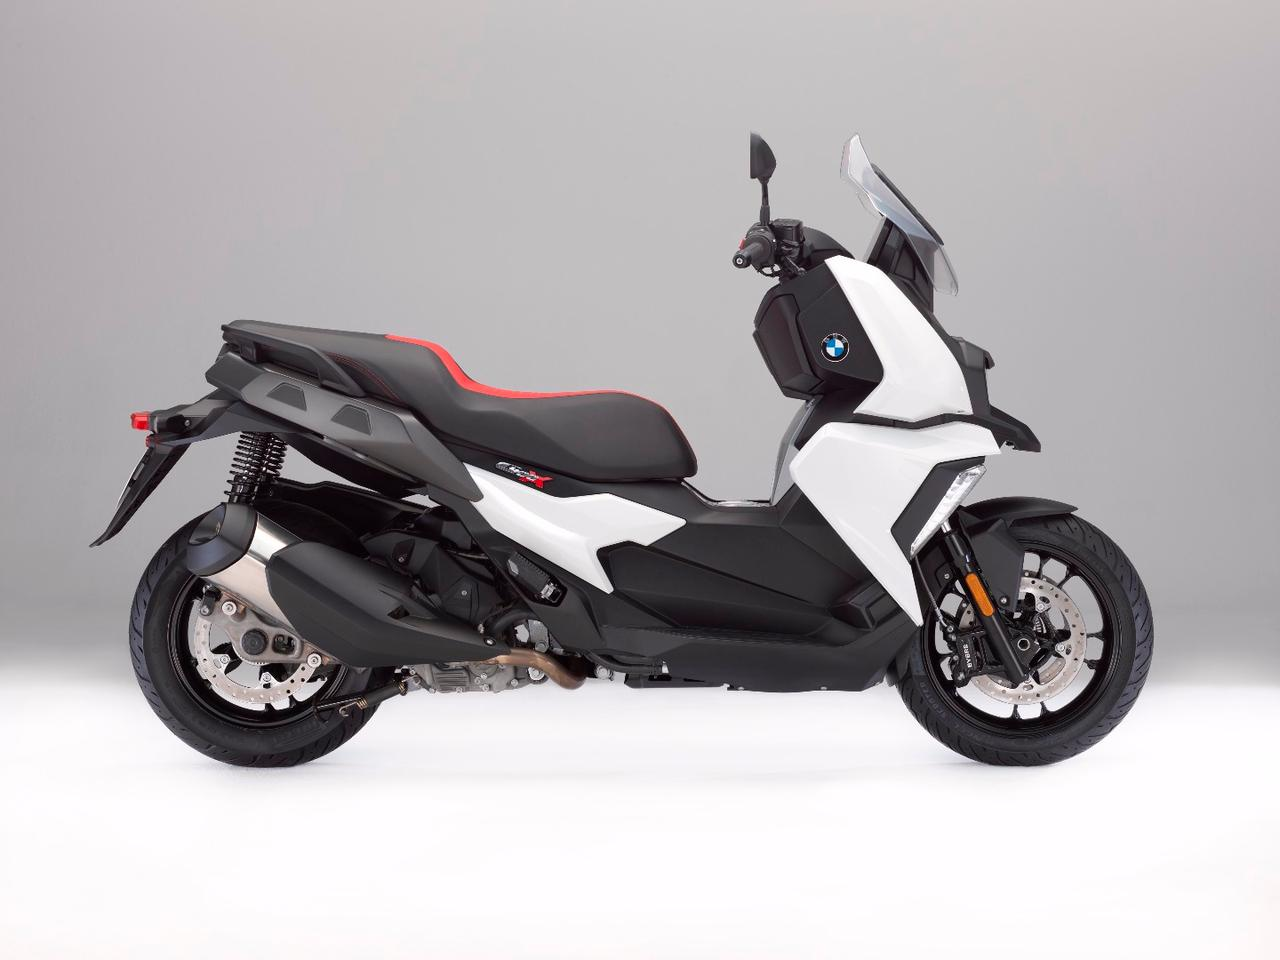 BMW's new mid-size scooter, the C400X